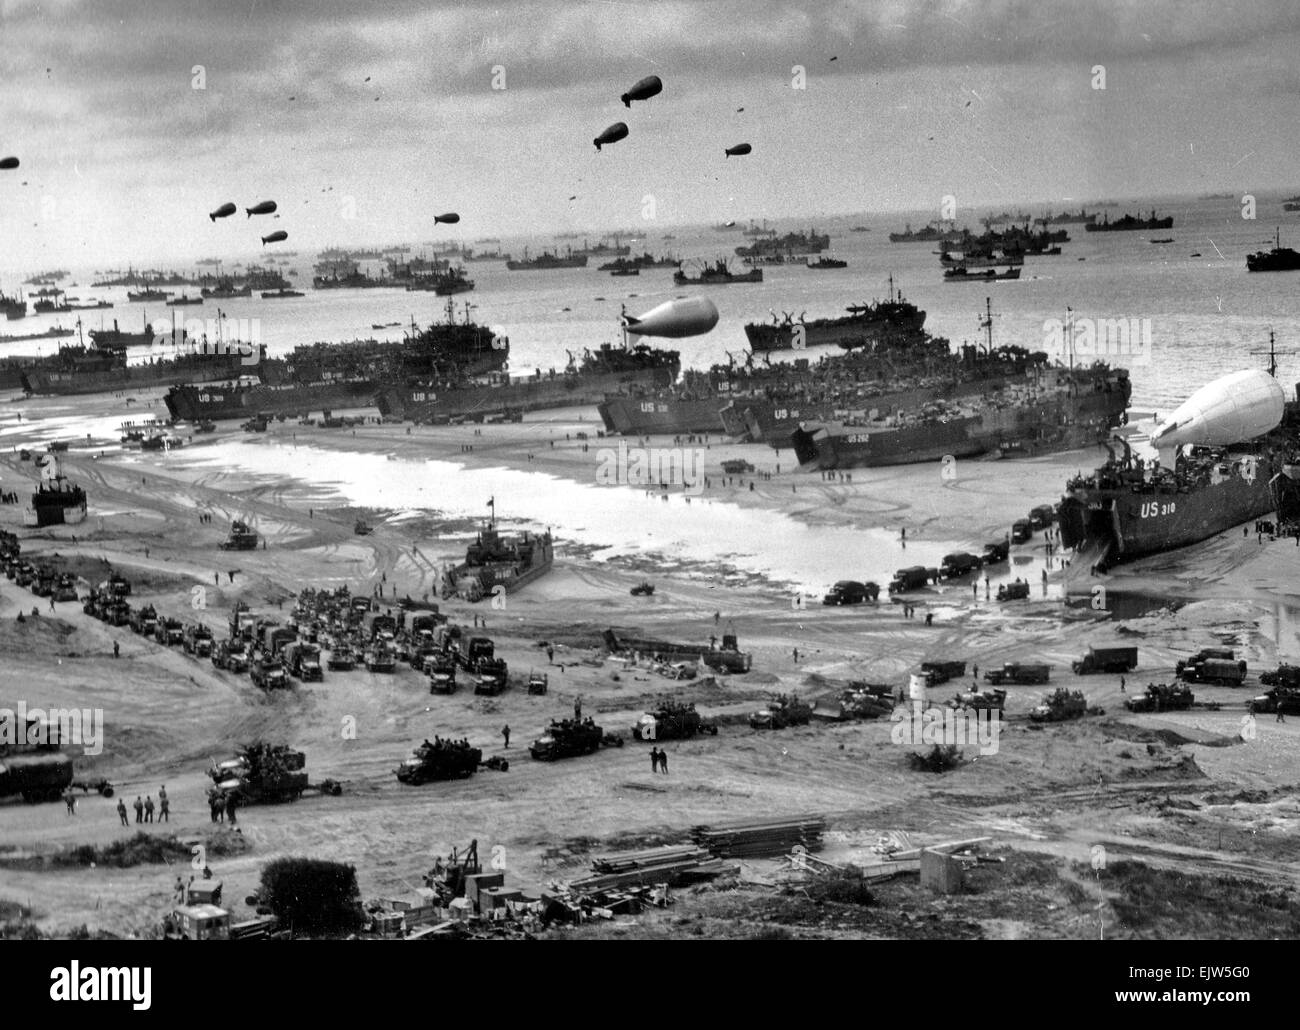 June 1944, the D-Day Invasion of Normandy. - Stock Image